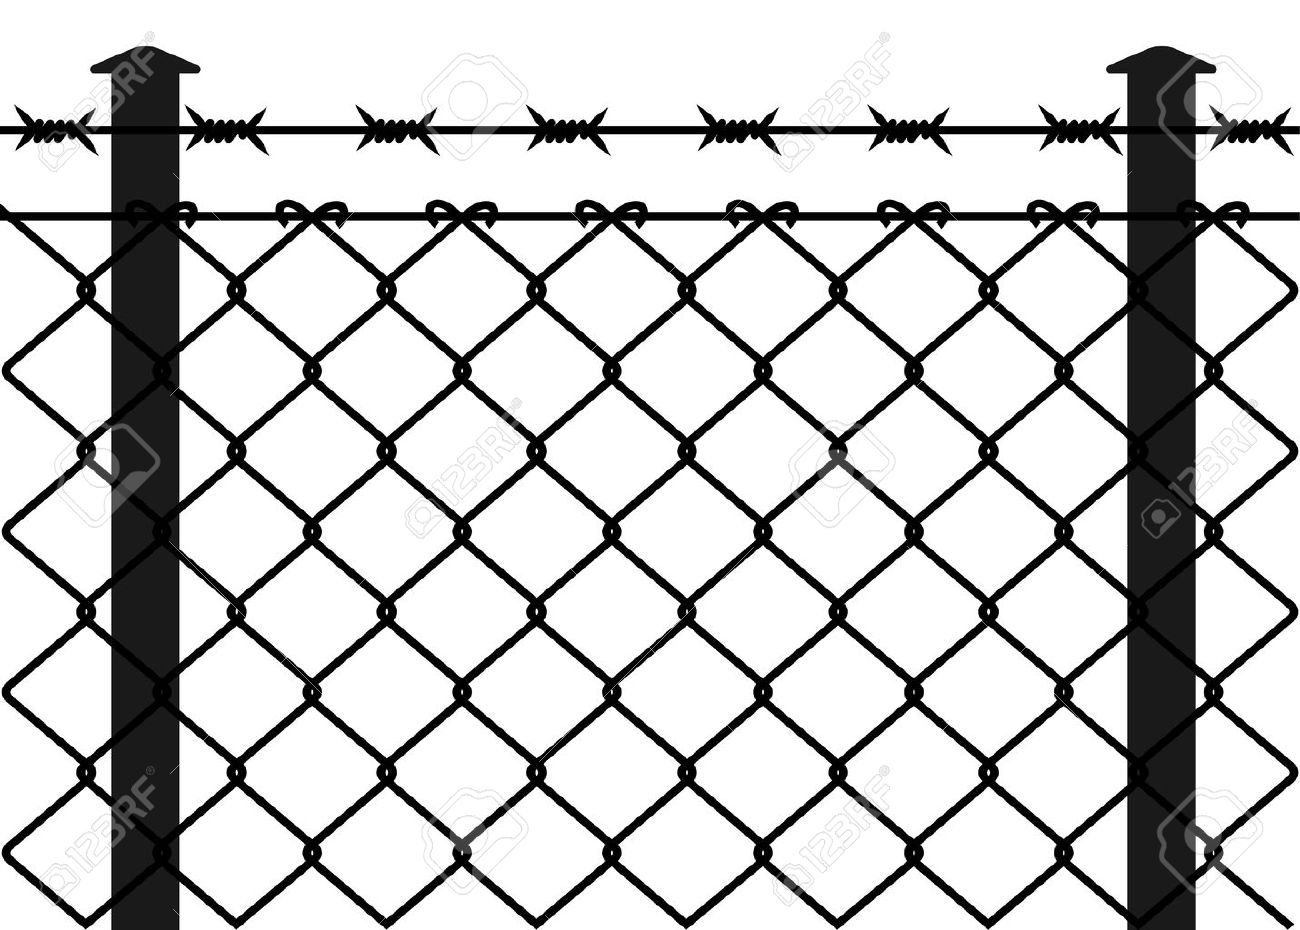 Wire Fence. Wire Fence I - Churl.co